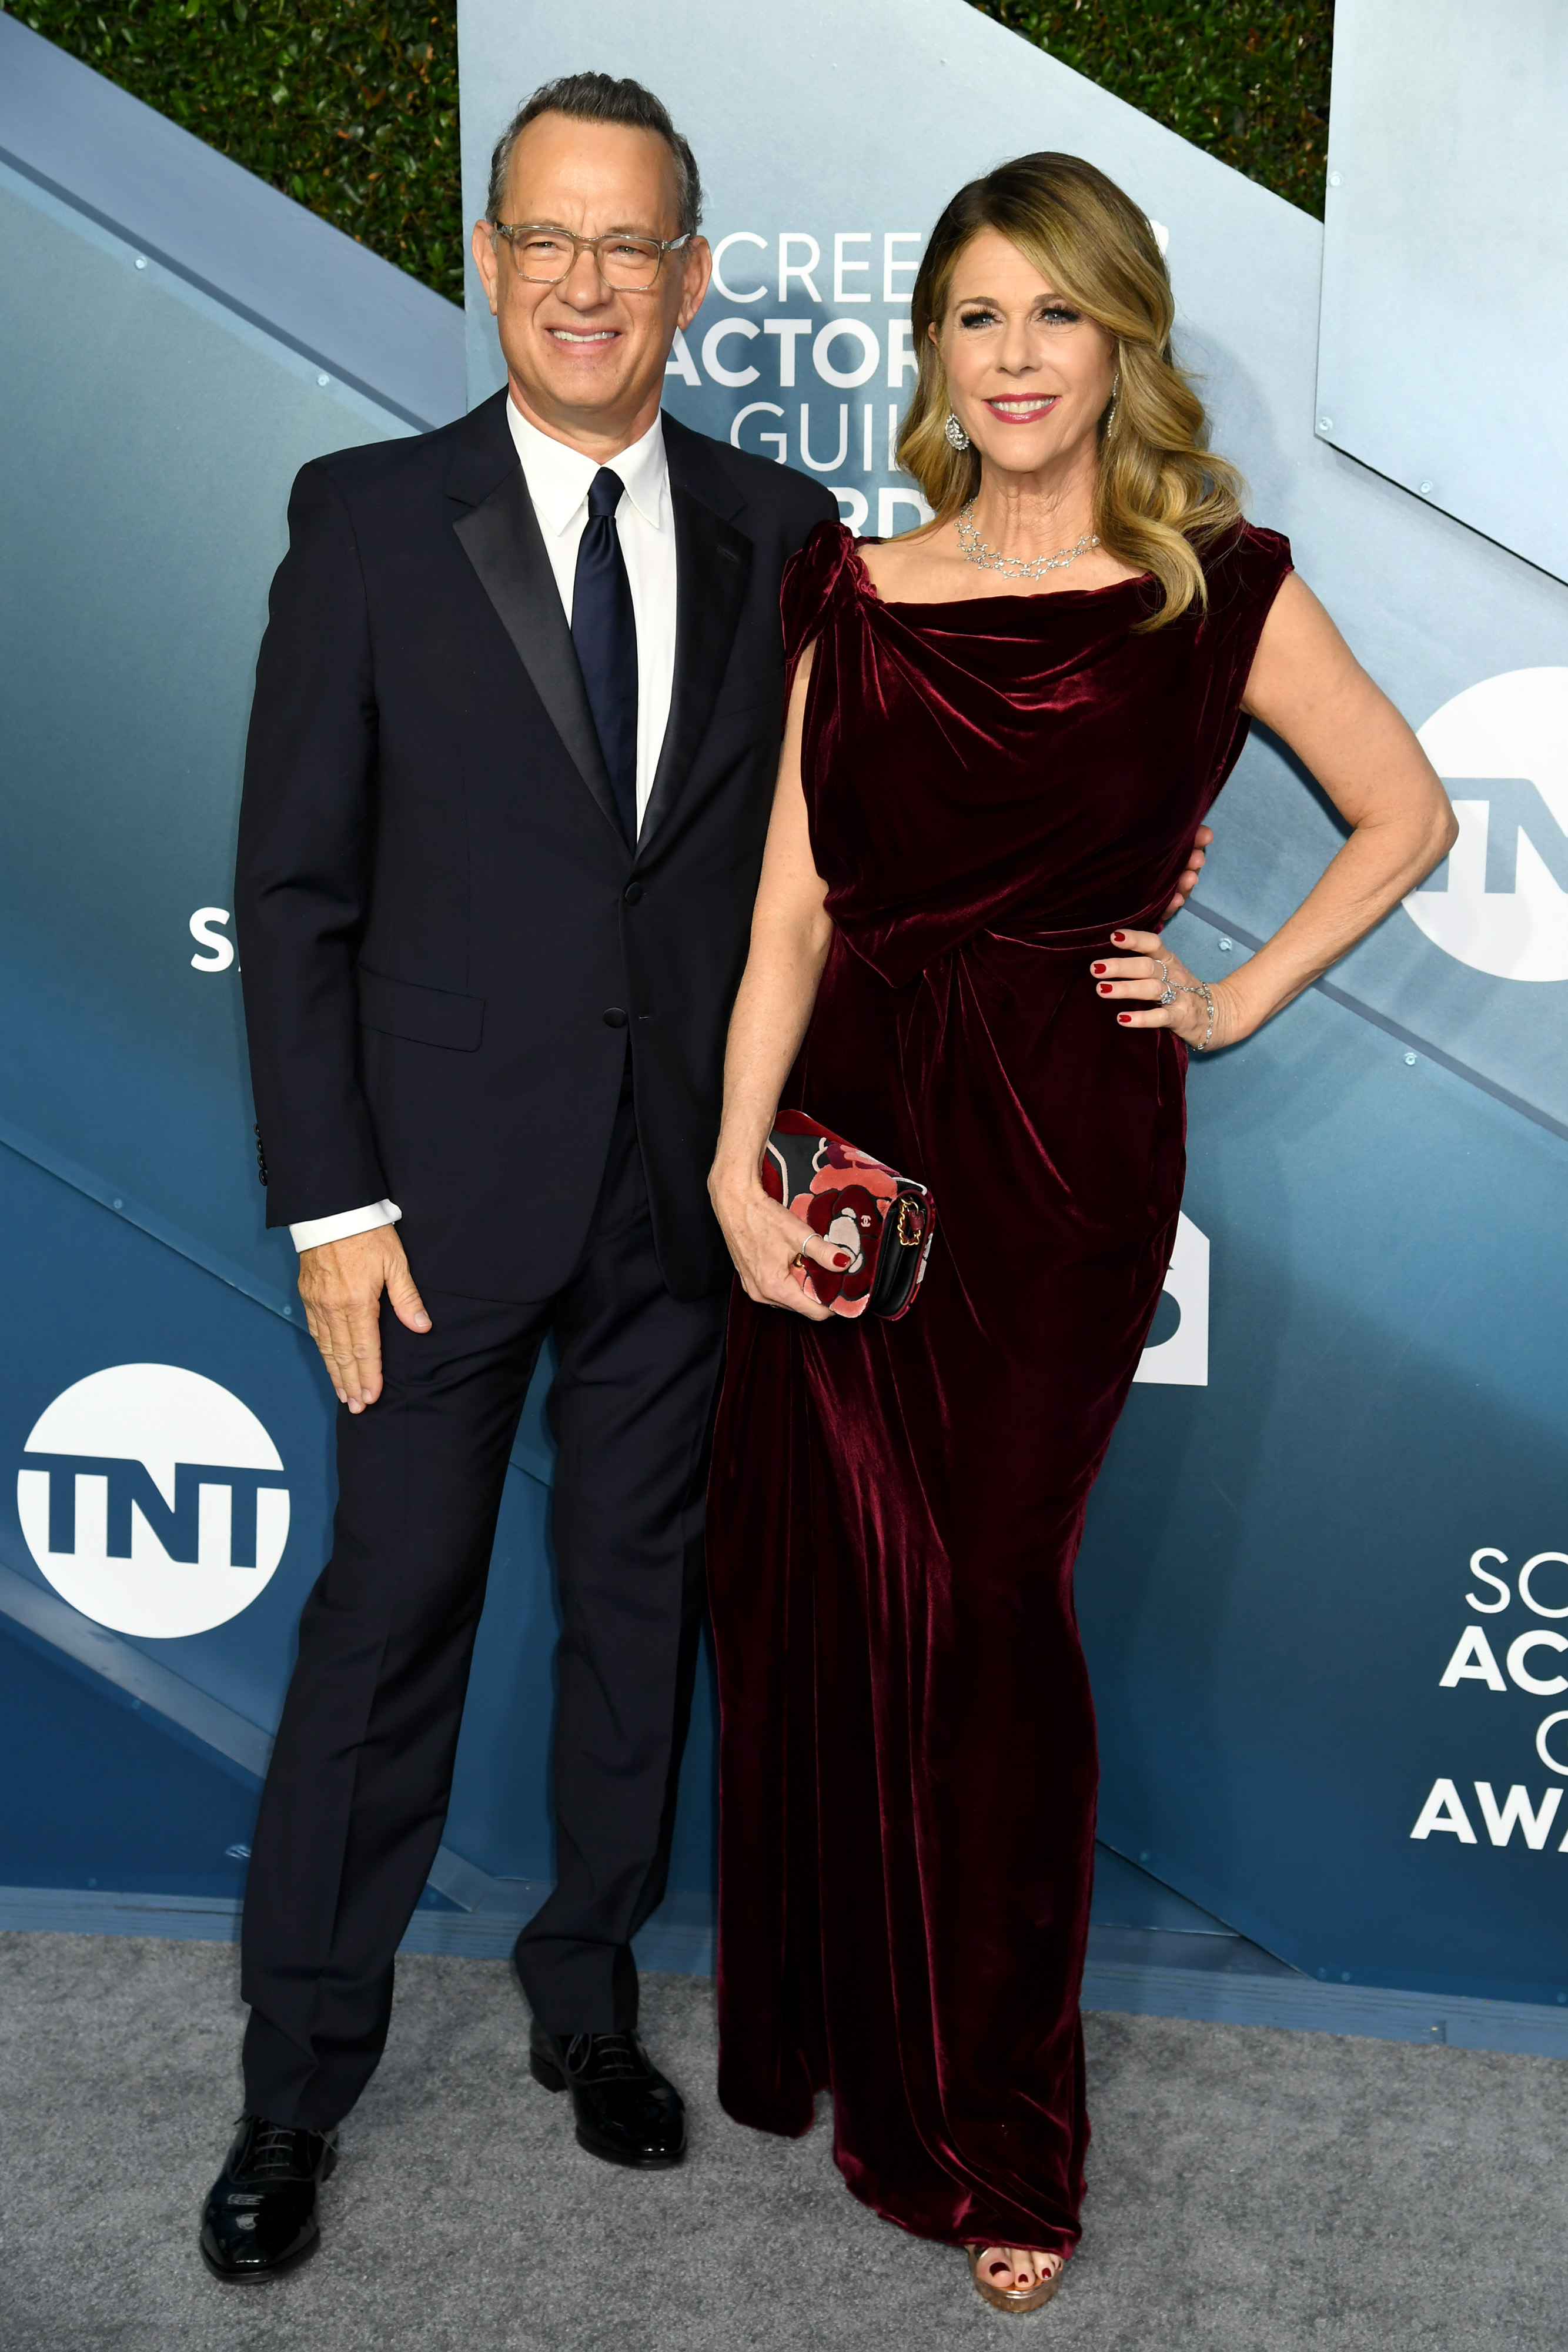 LOS ANGELES, CALIFORNIA - JANUARY 19: (L-R) Tom Hanks and Rita Wilson attends the 26th Annual Screen ActorsGuild Awards at The Shrine Auditorium on January 19, 2020 in Los Angeles, California. (Photo by Jeff Kravitz/FilmMagic)